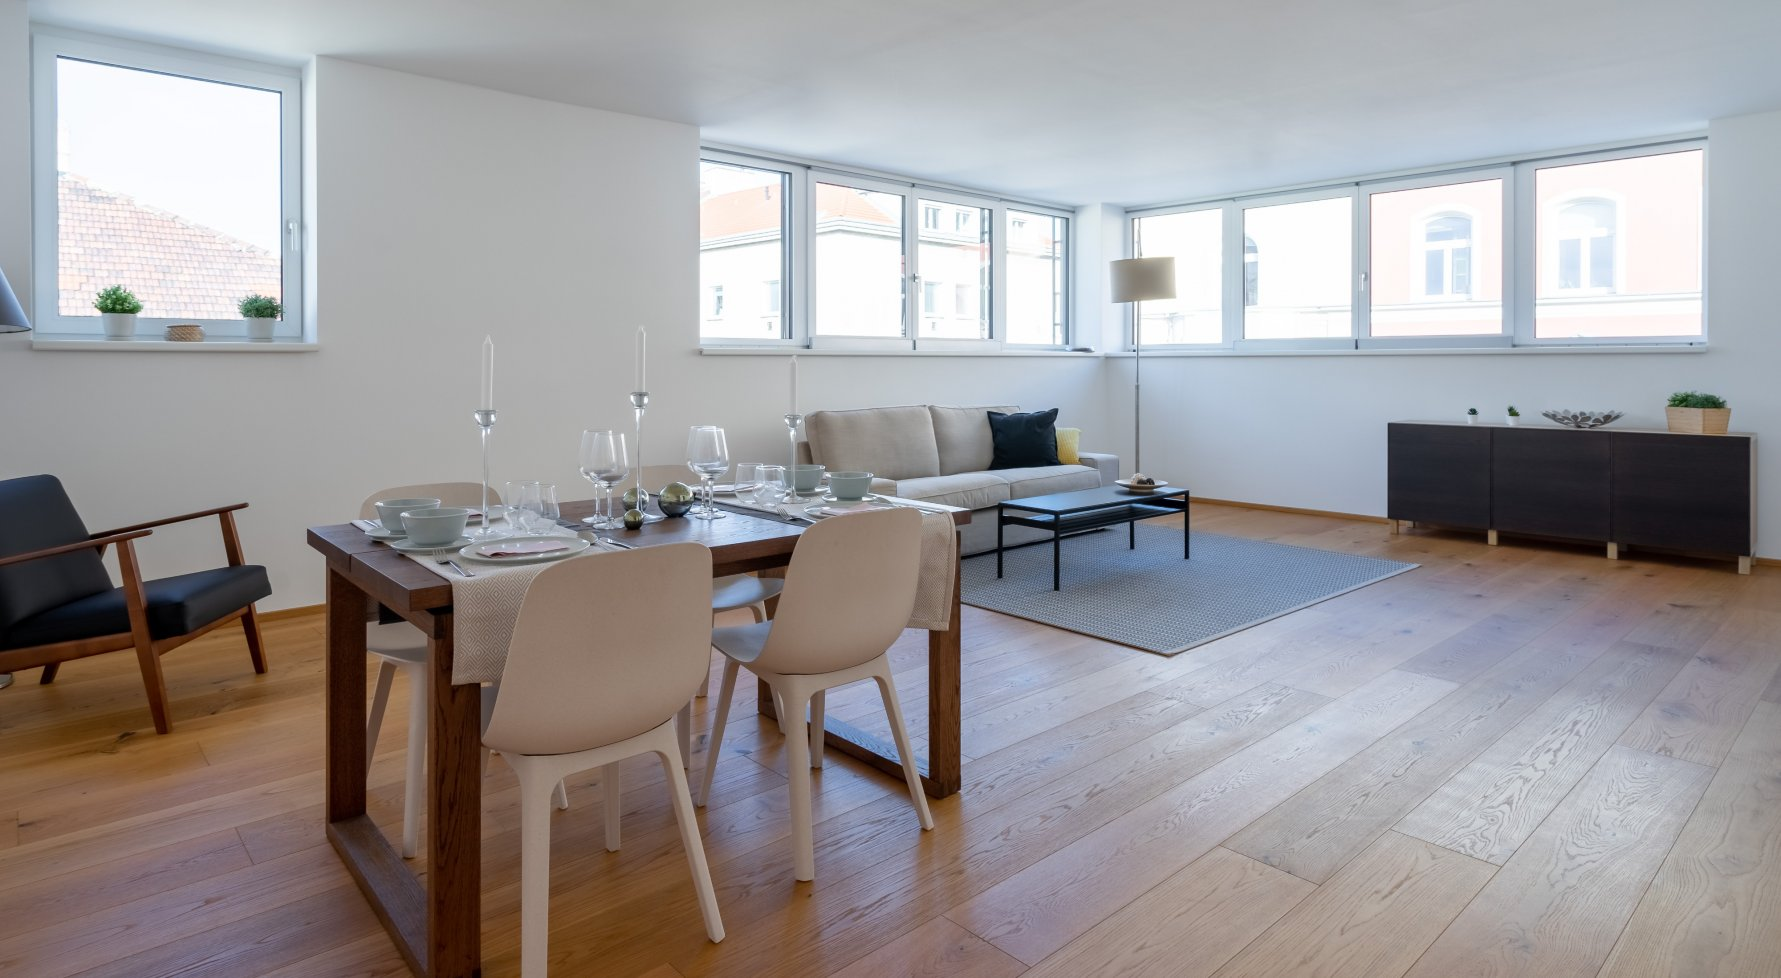 Property in 1040 Wien, 4. Bezirk: 3-room apartment with flair in a top location in the 4th district! - picture 1